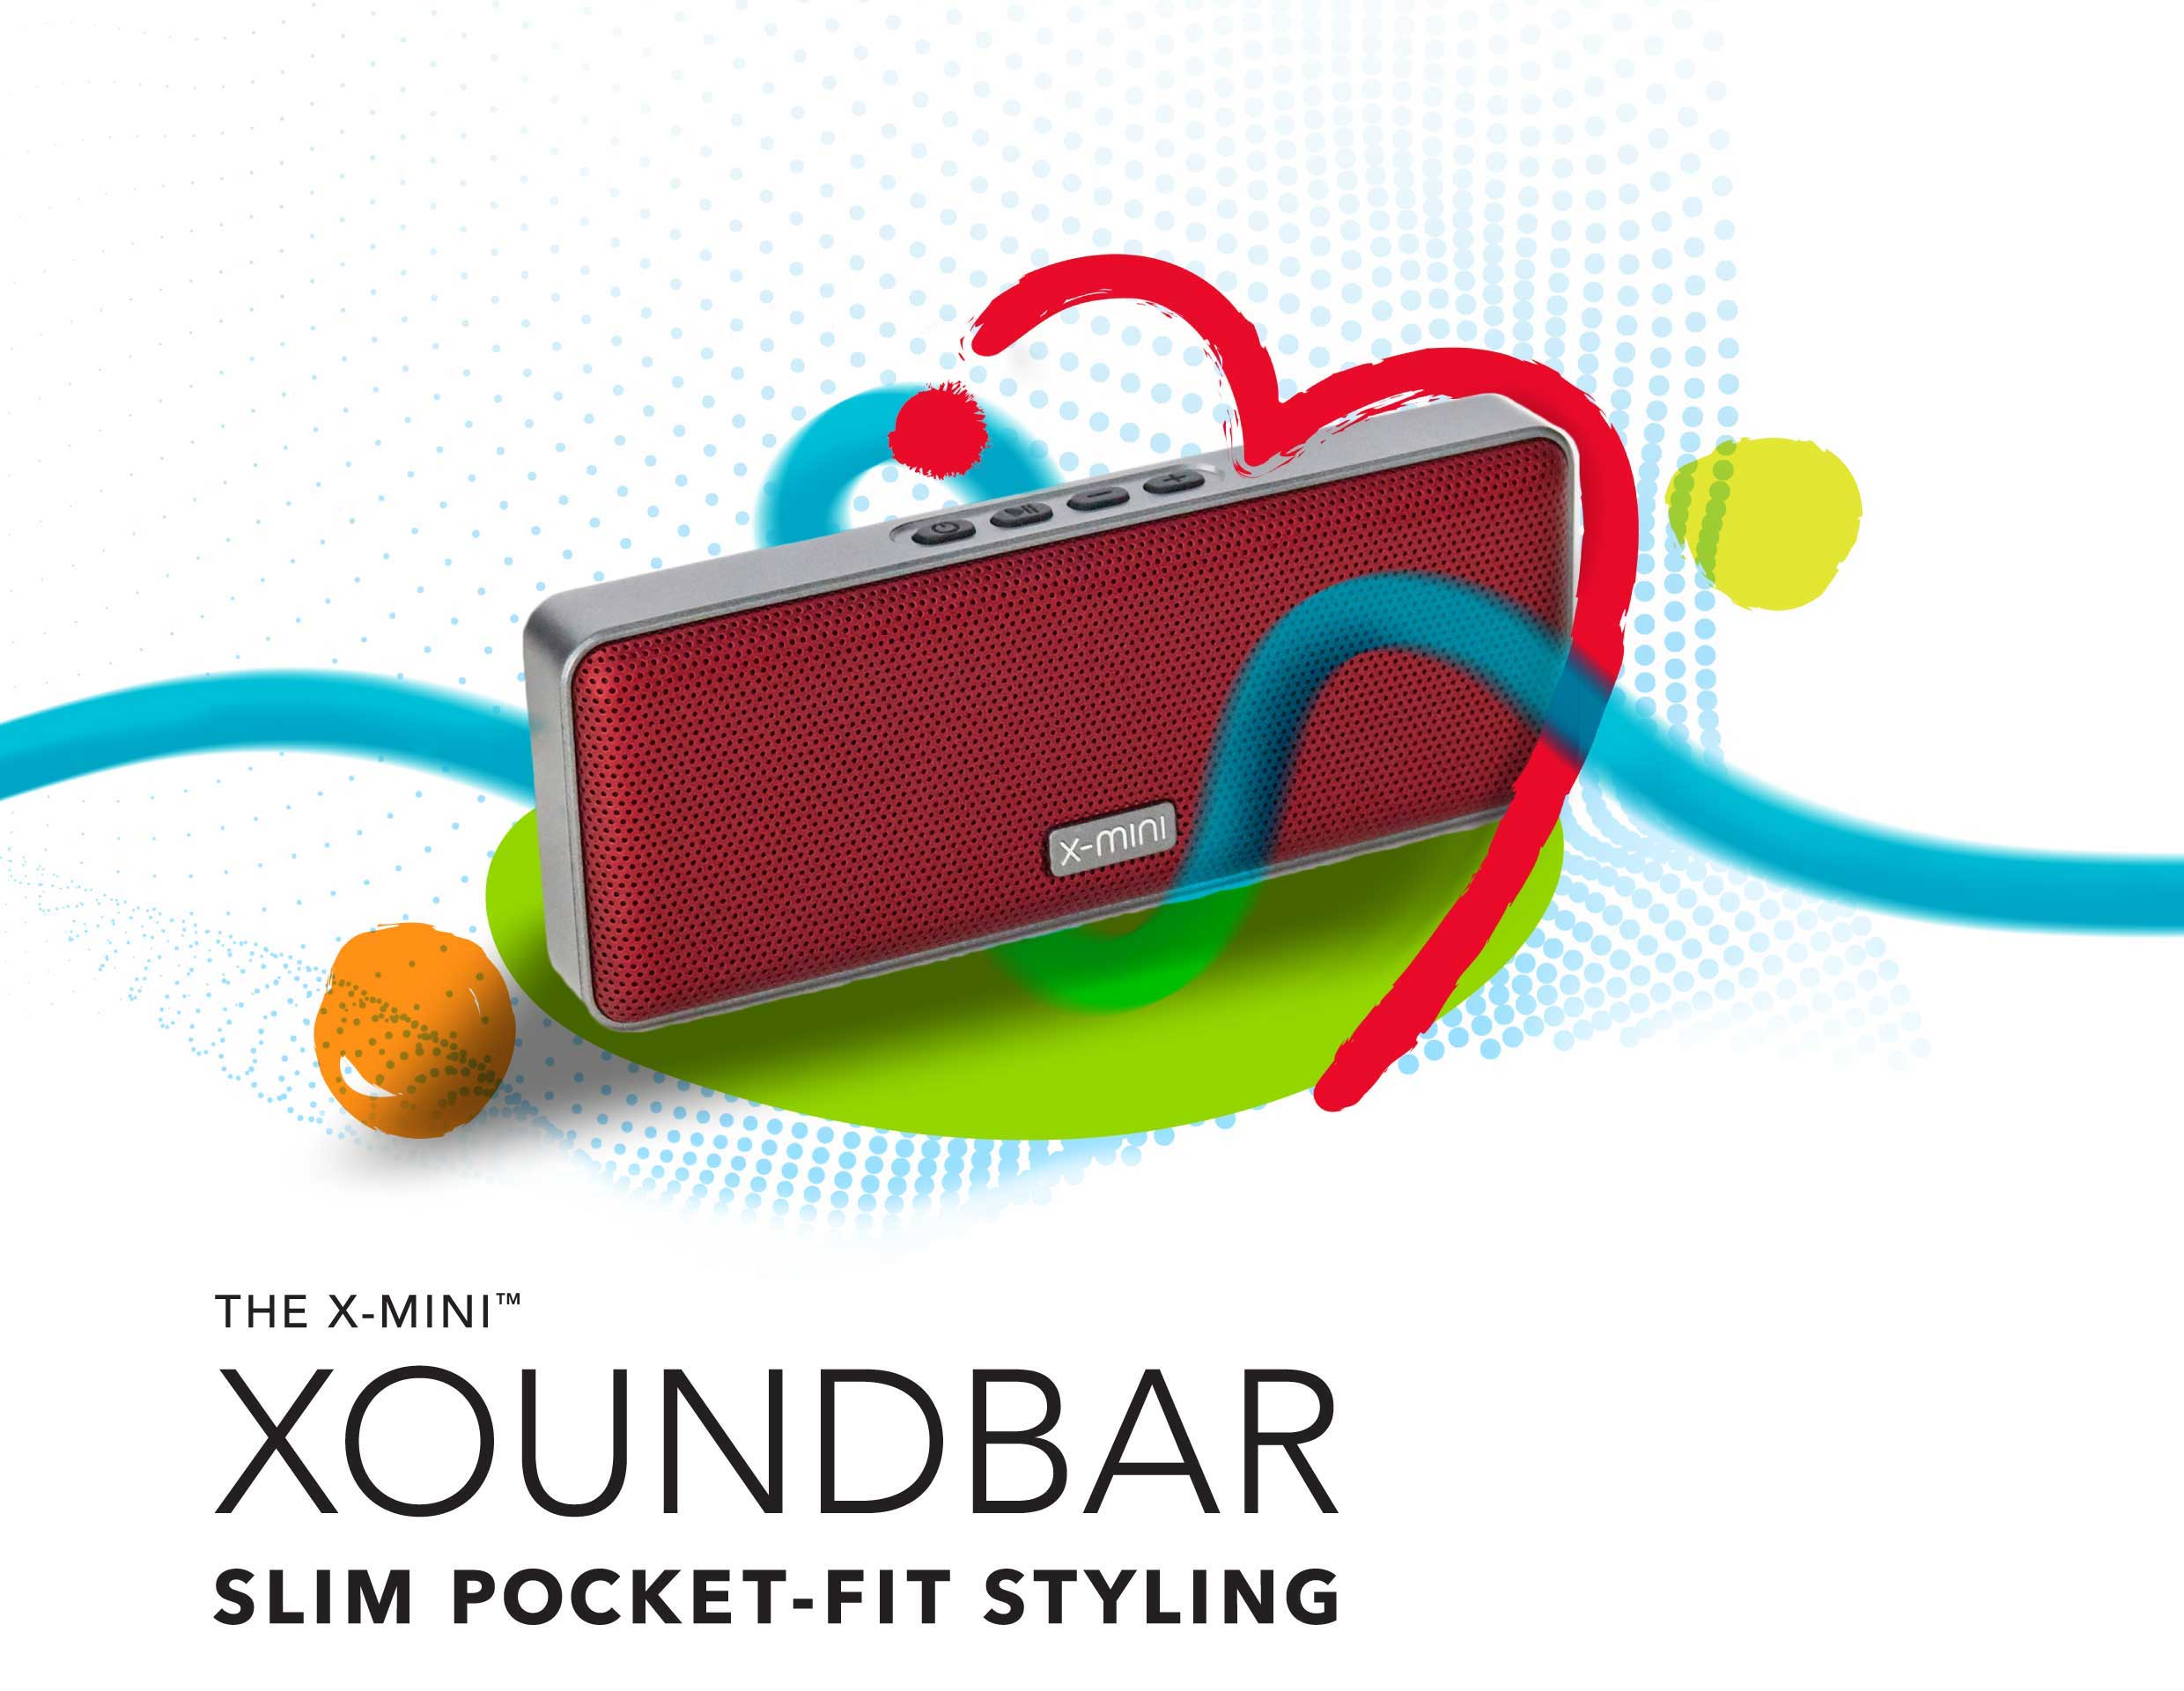 X-mini-Xoundbar-True-Wireless-Portable-Bluetooth-Stereo-Speaker